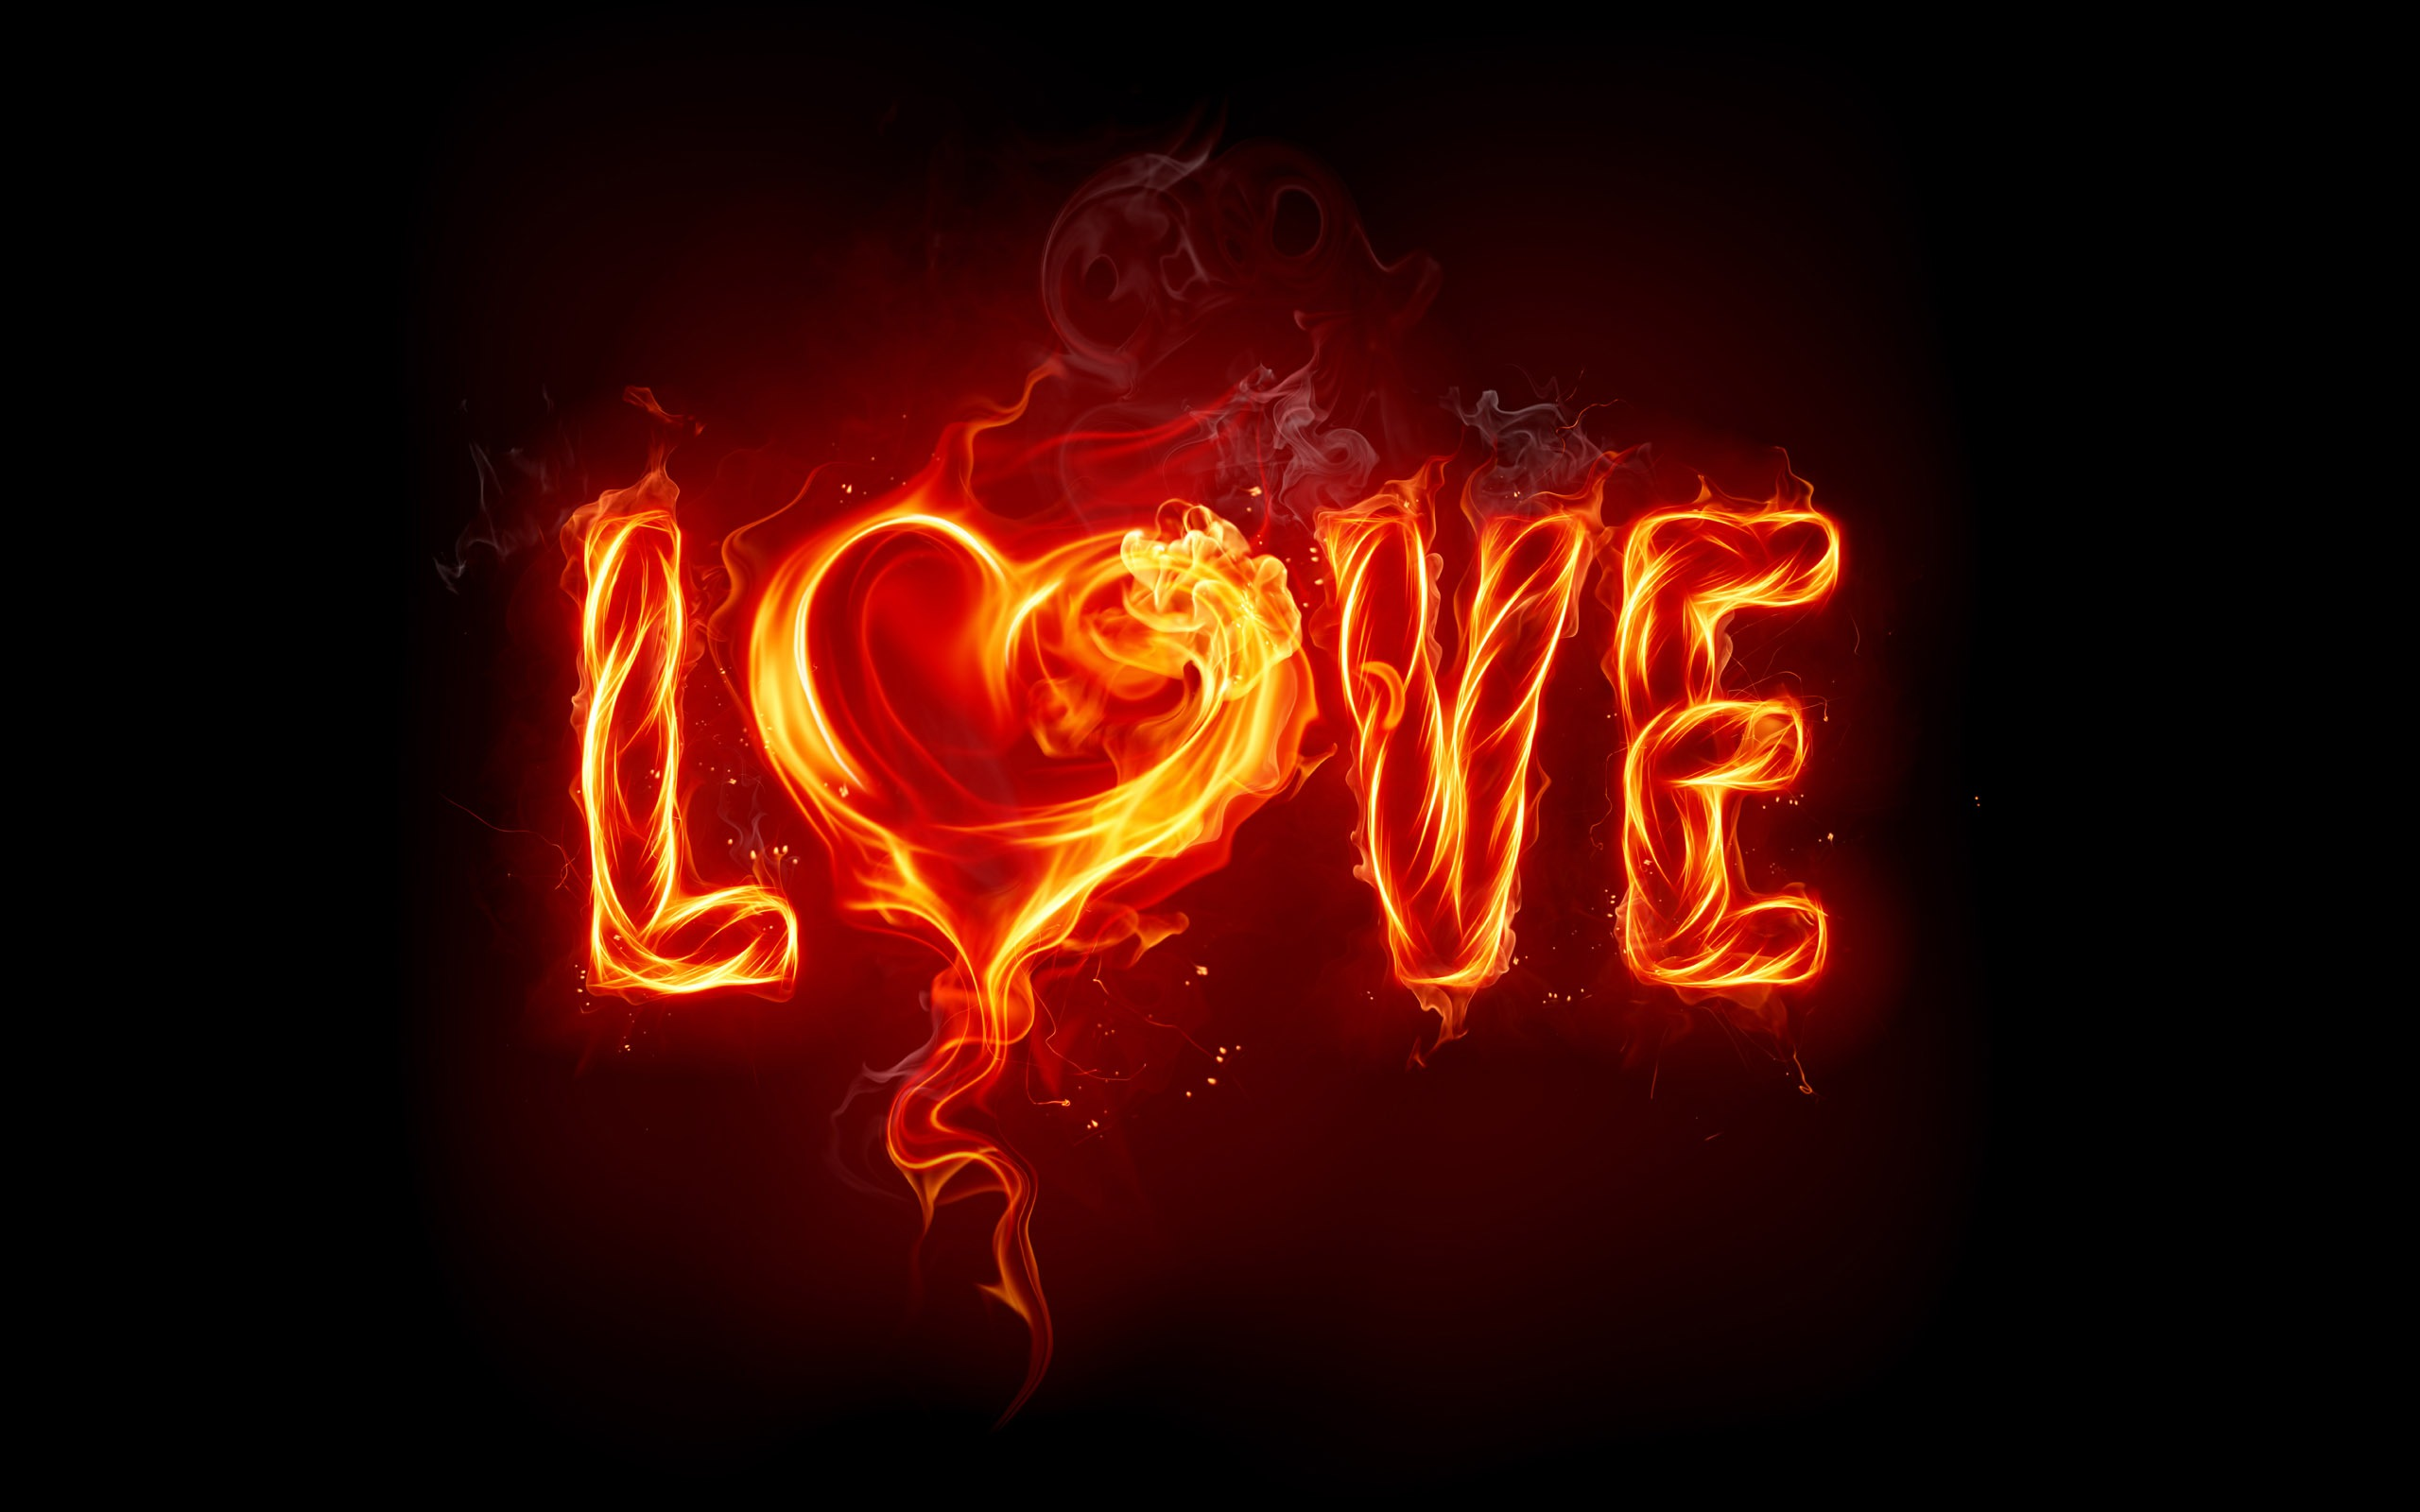 2560x1600 Burning love desktop PC and Mac wallpaper